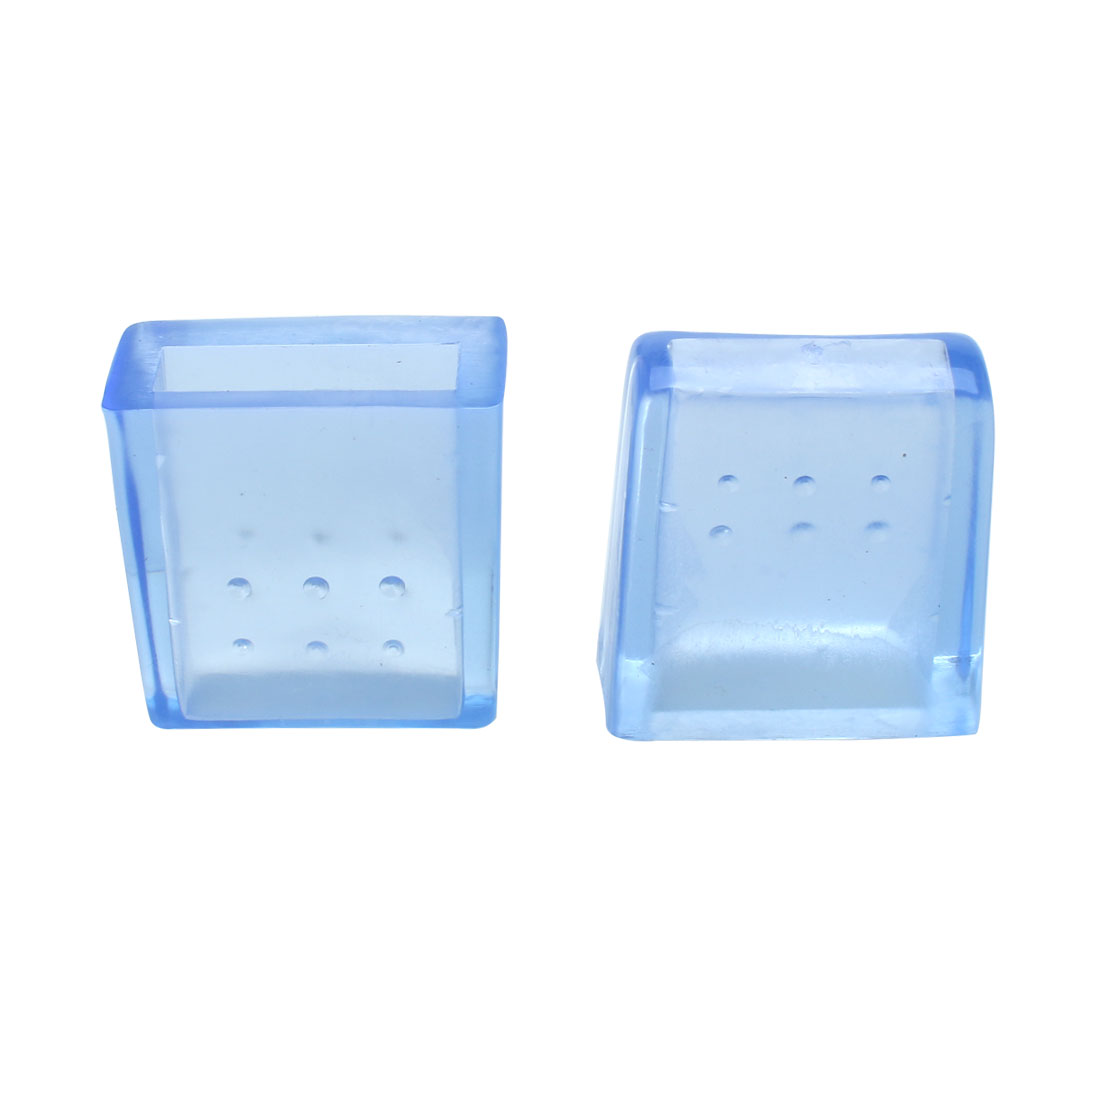 "Clear Blue Sofa Leg Caps End Tip Feet Furniture Protector 6pcs 0.39""x1.18"" (10x30mm) - image 7 of 7"